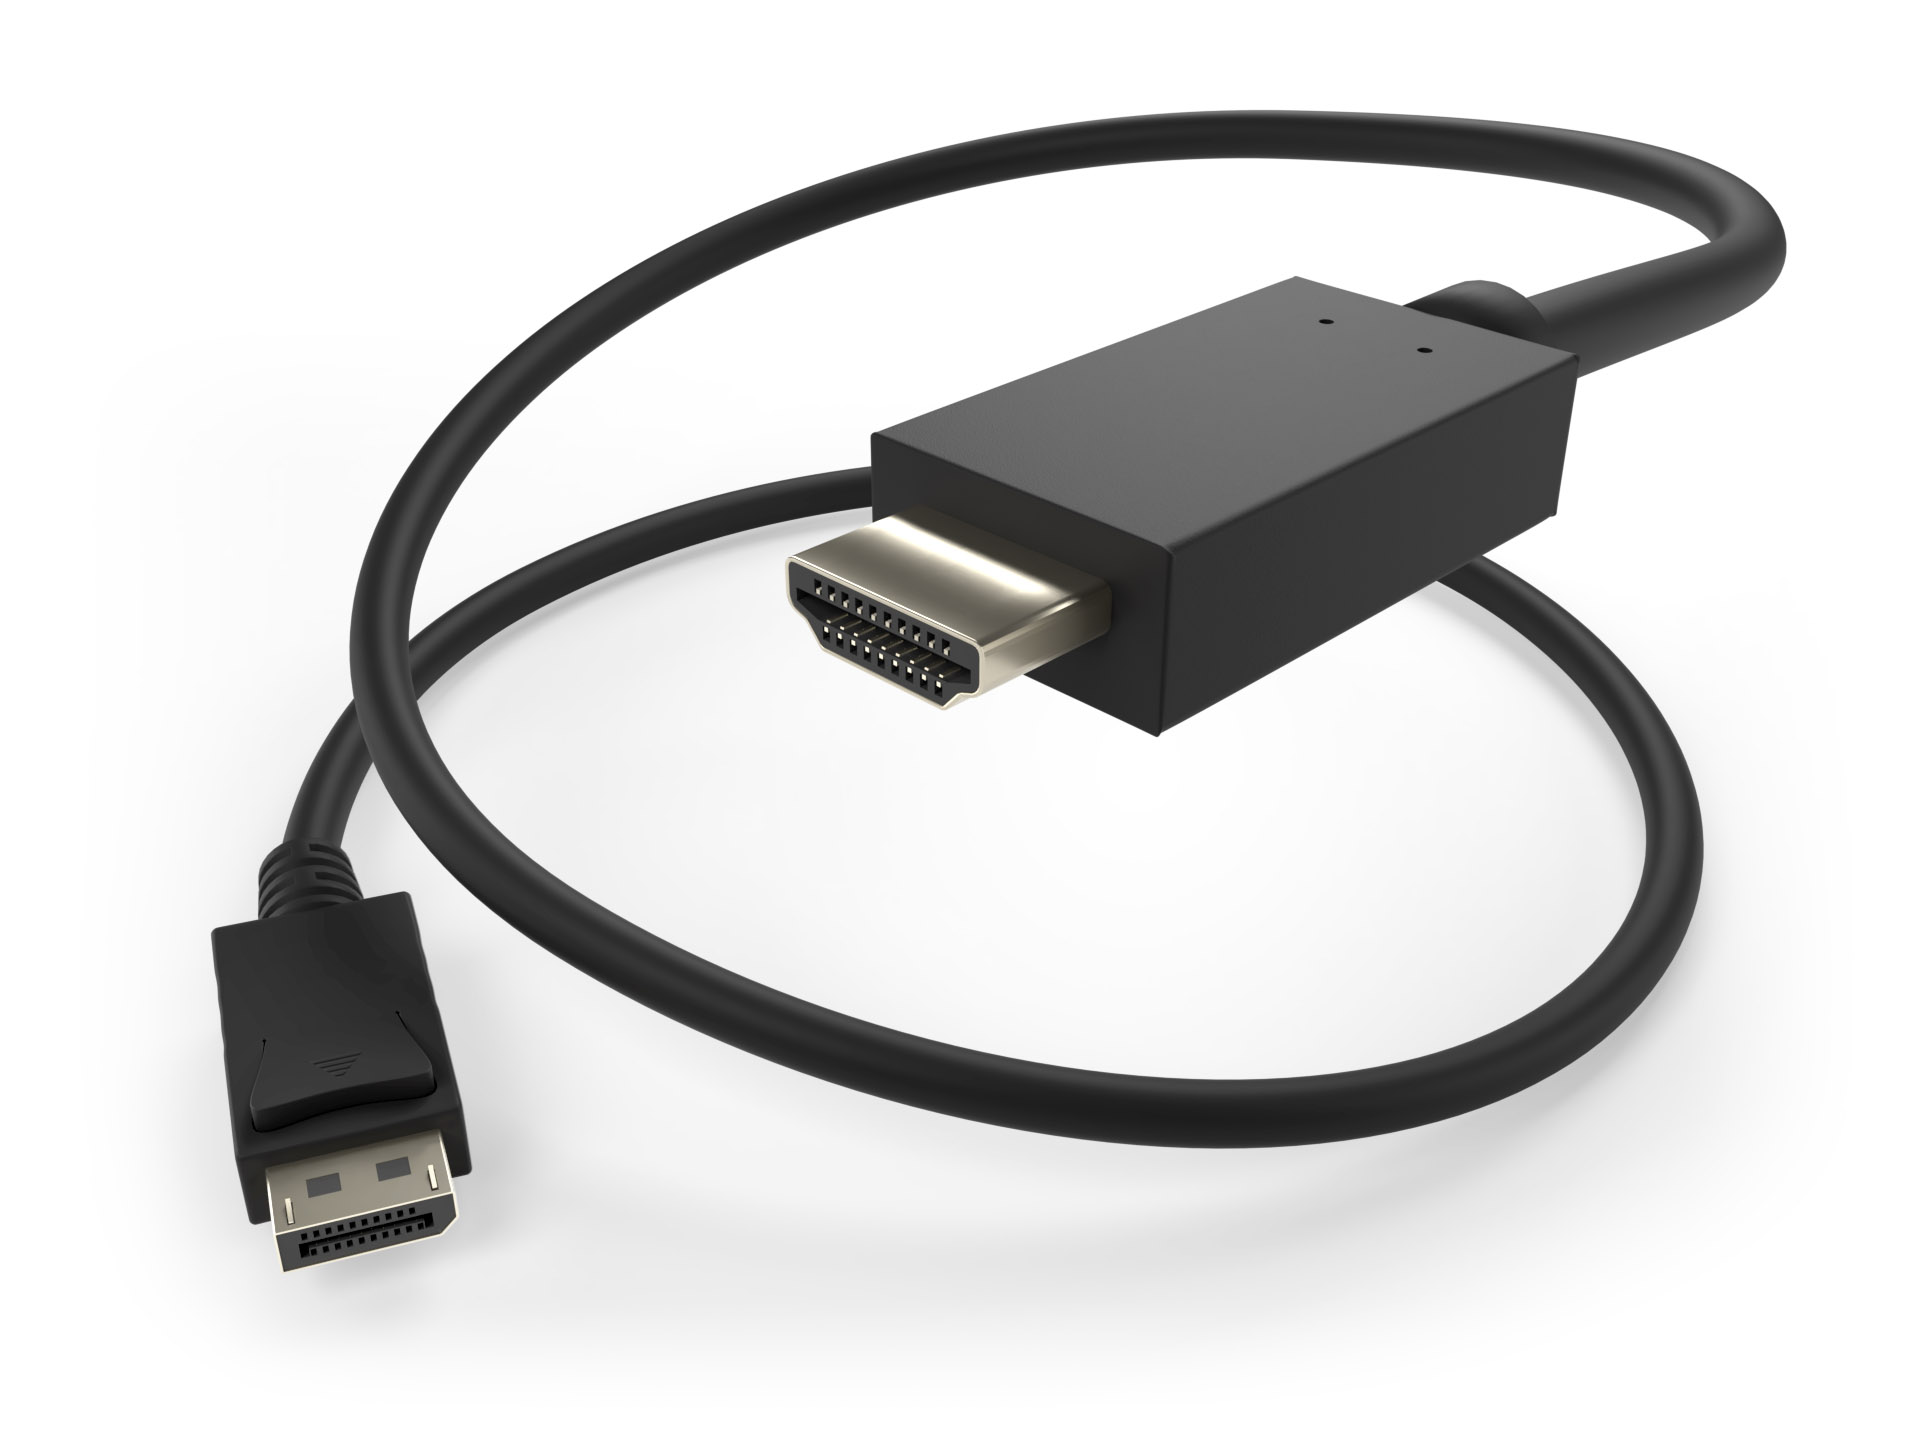 image of a DisplayPort to HDMI male to male cable